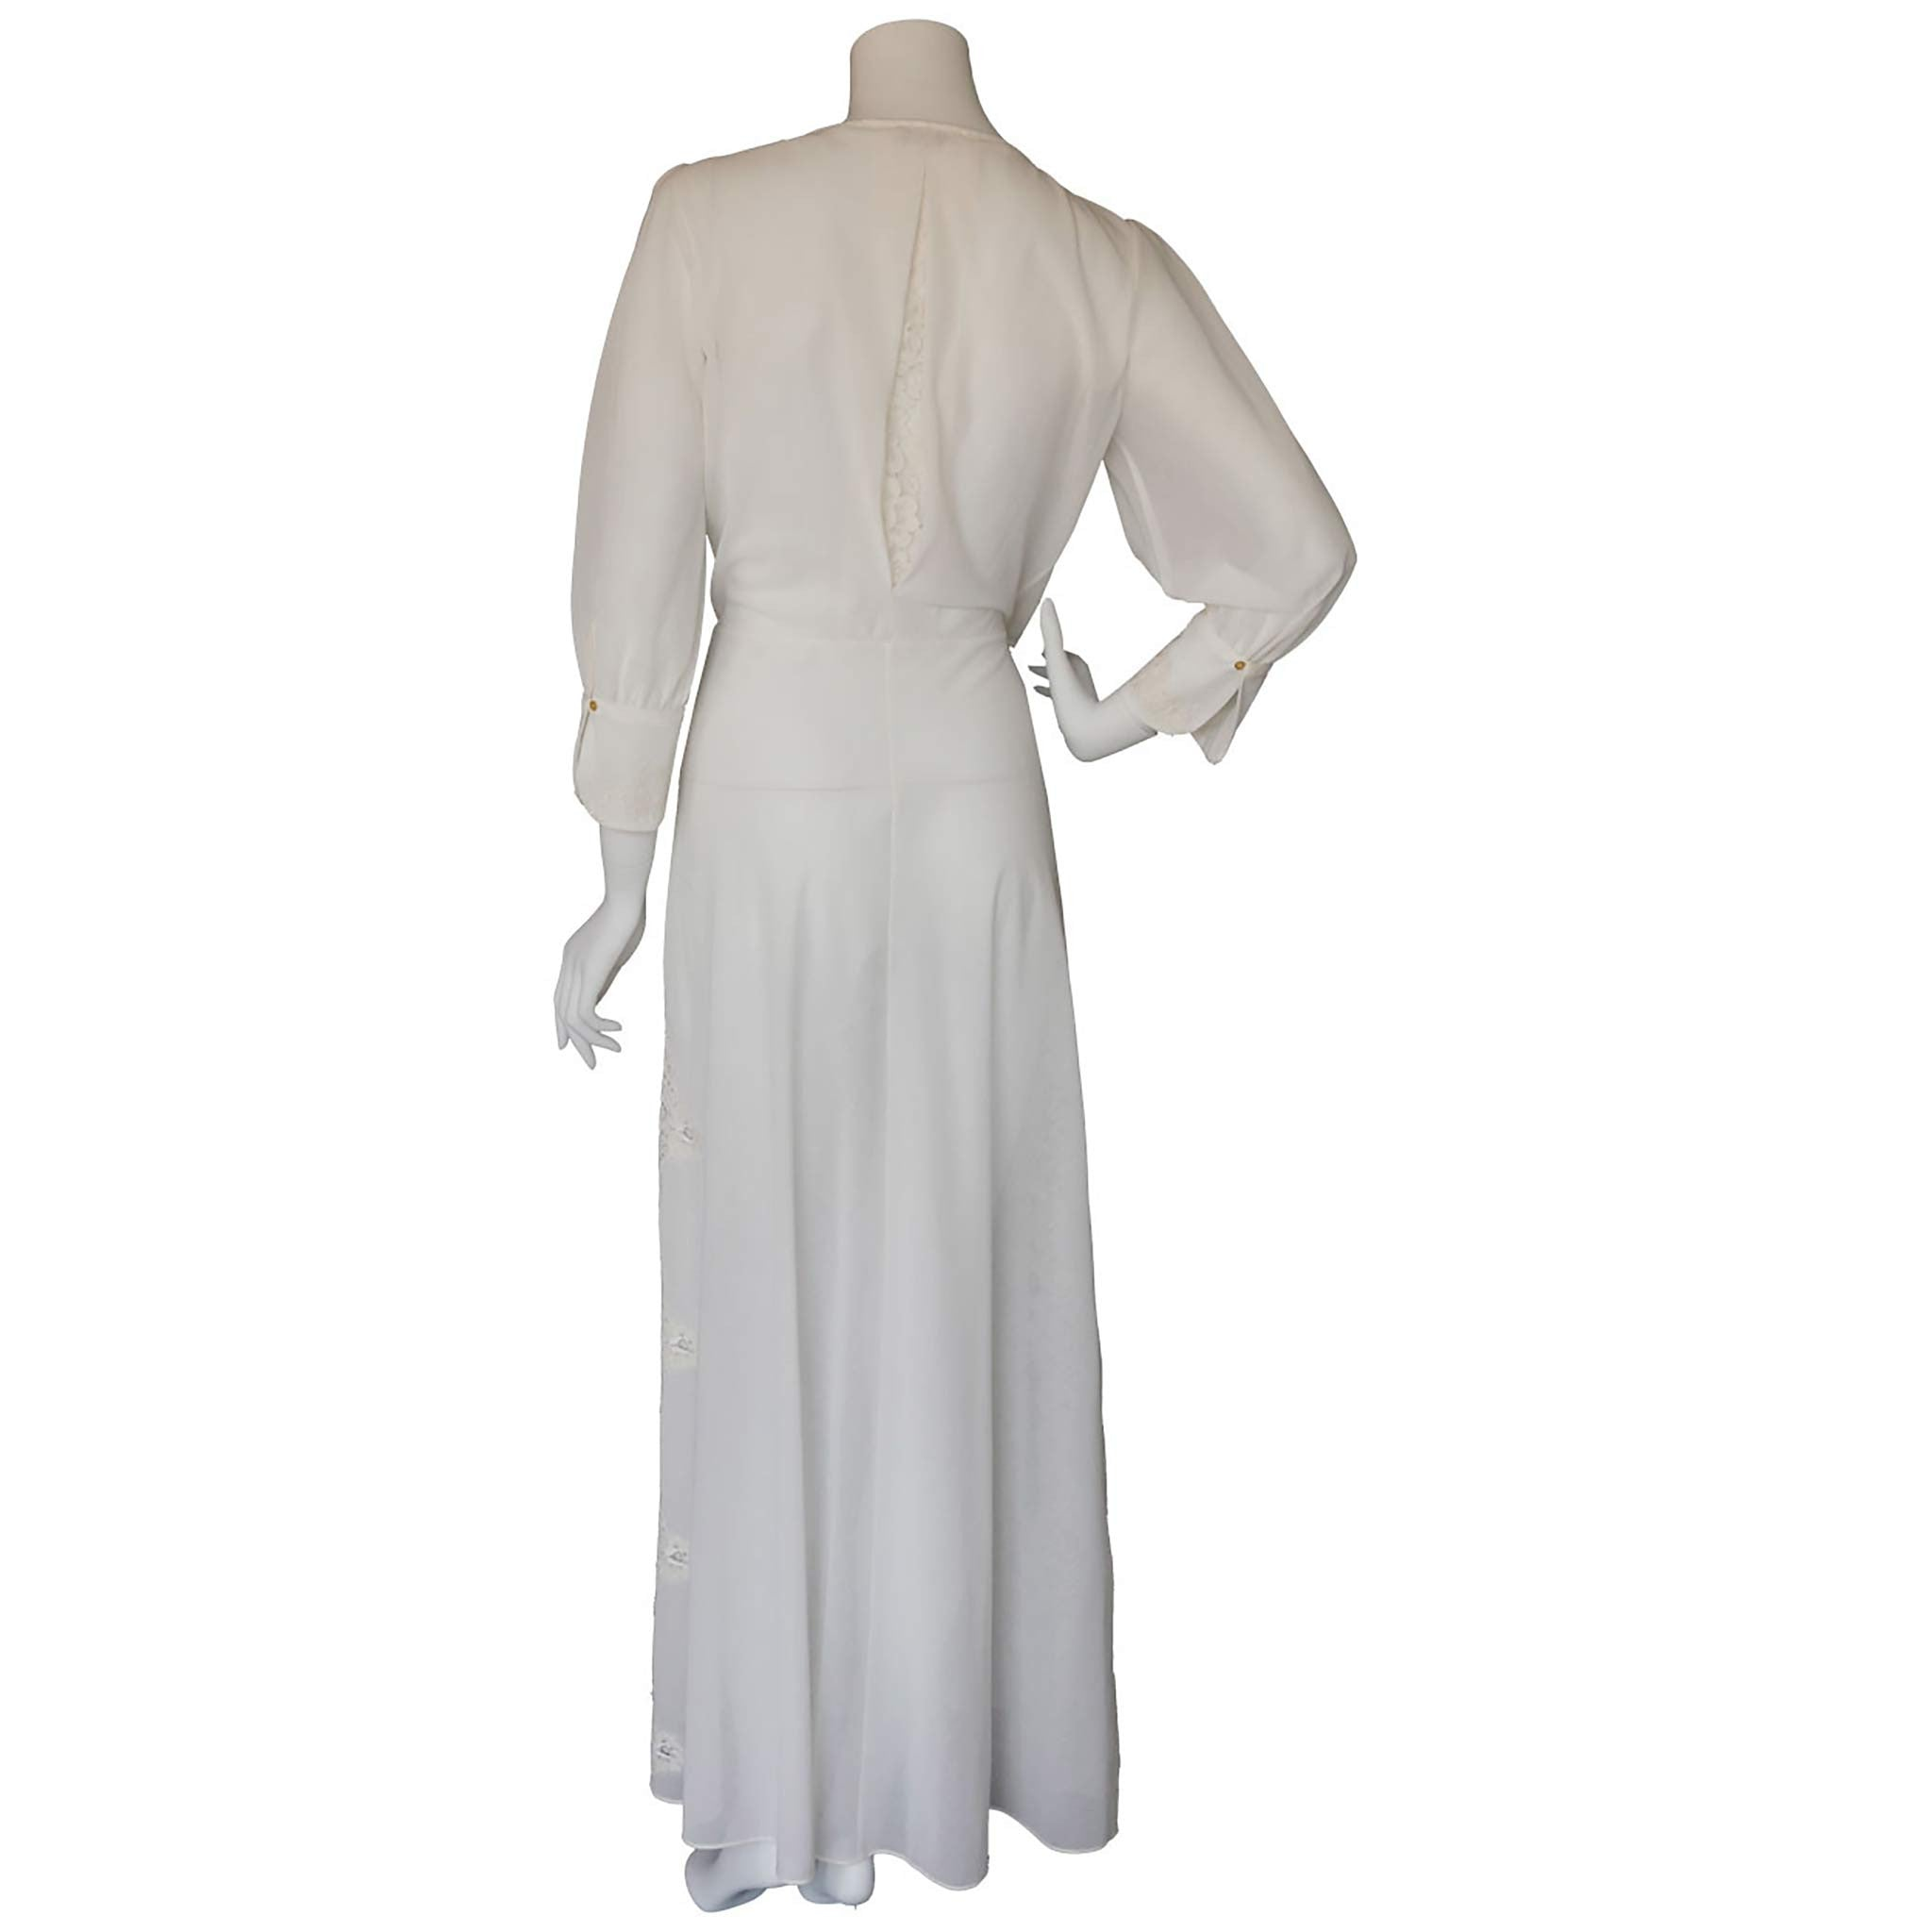 Vesta Wrap Robe in Swiss Cotton Voile